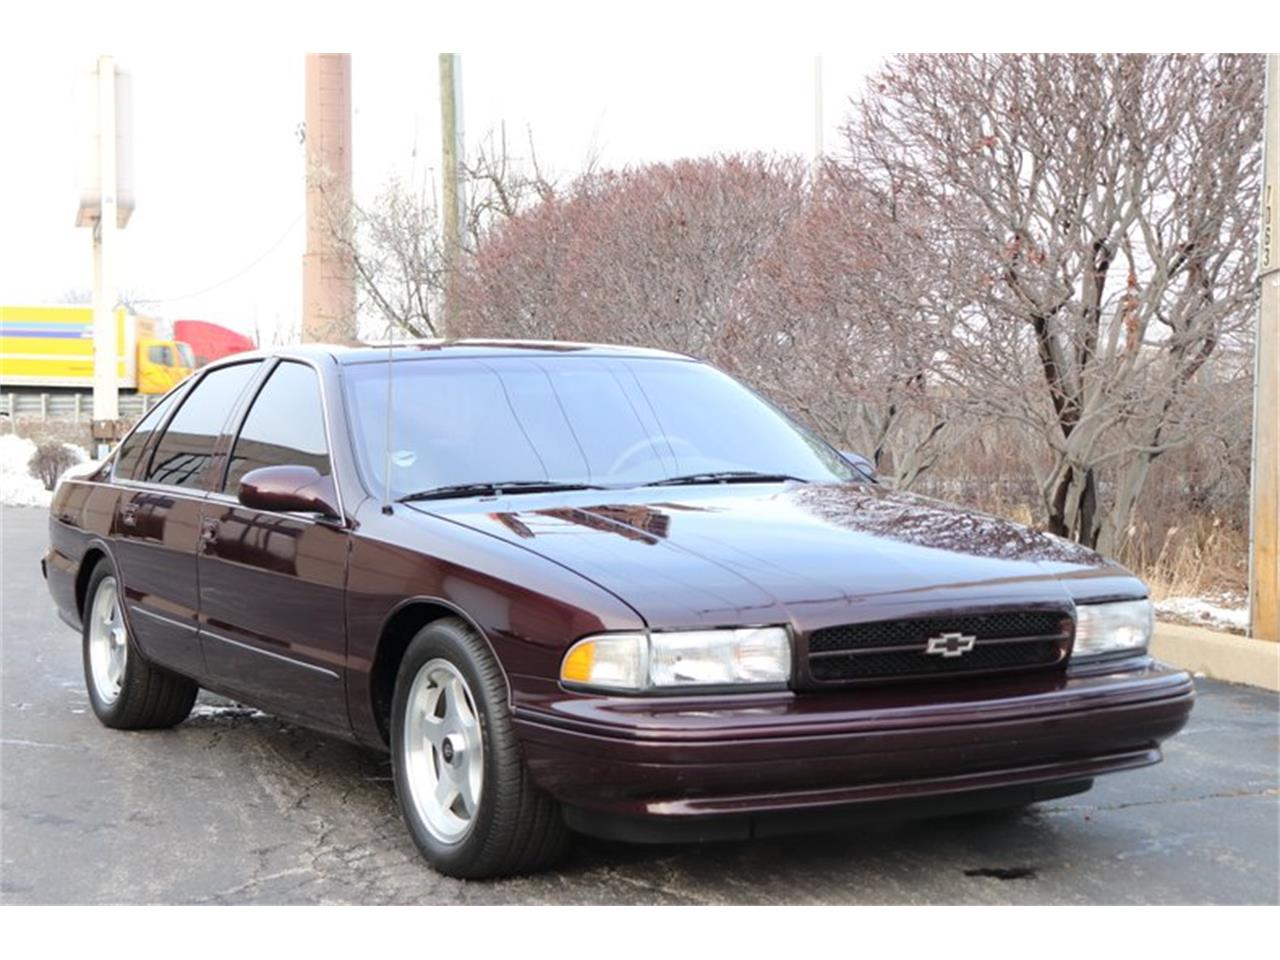 Large Picture of '96 Chevrolet Impala - $28,900.00 - P1PX